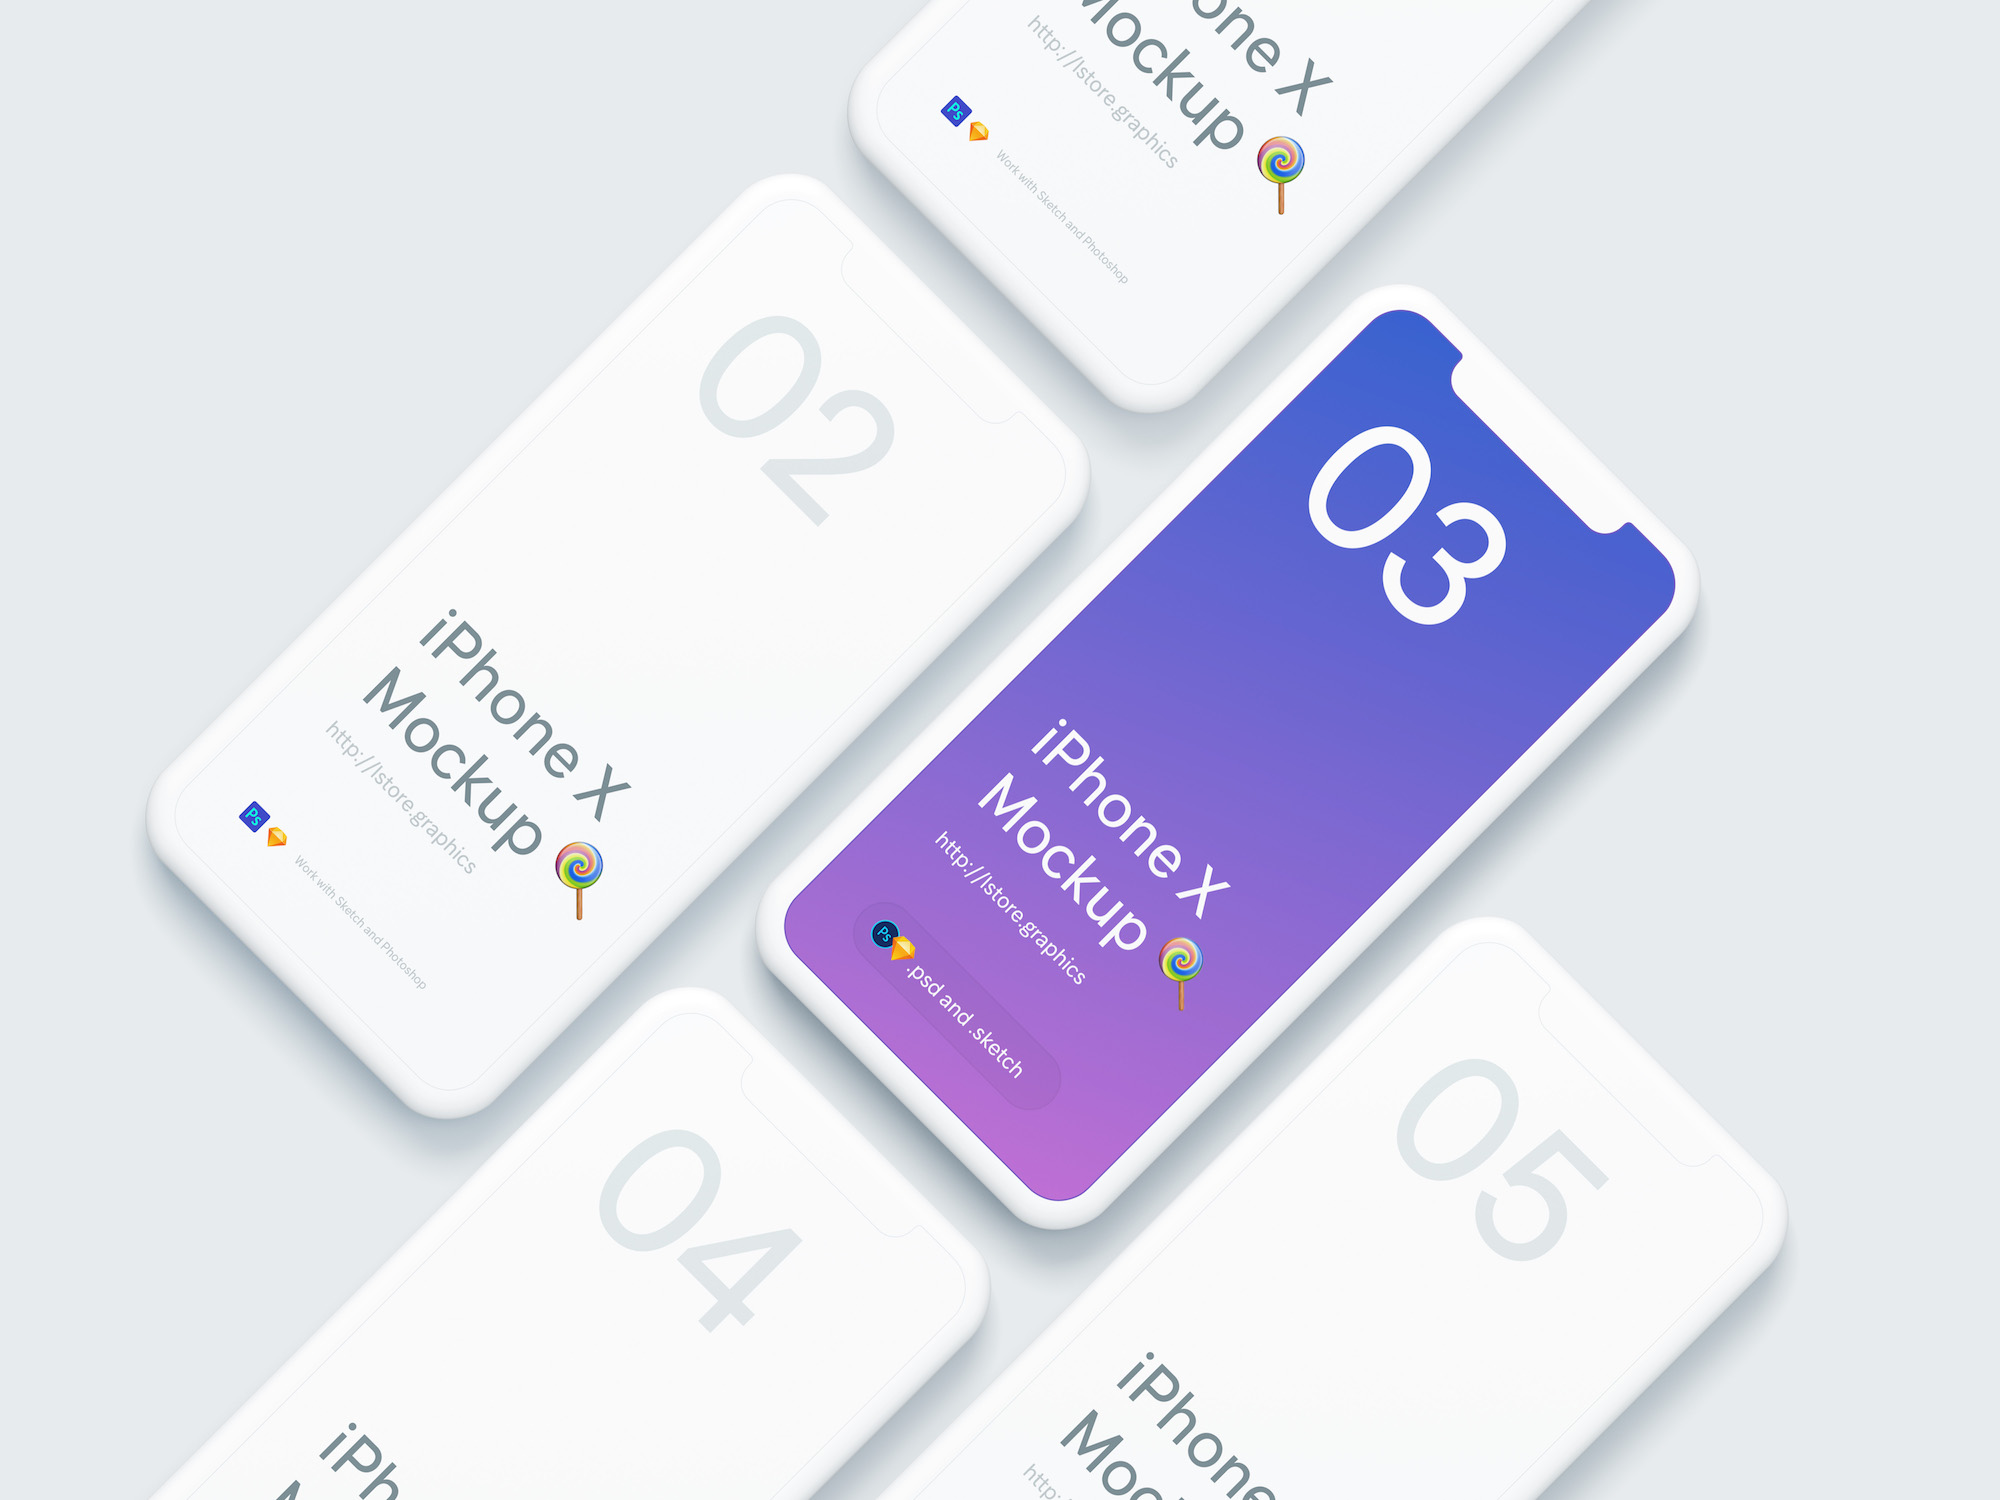 Free Download Colorful iPhone X Mockup PSD Sketch